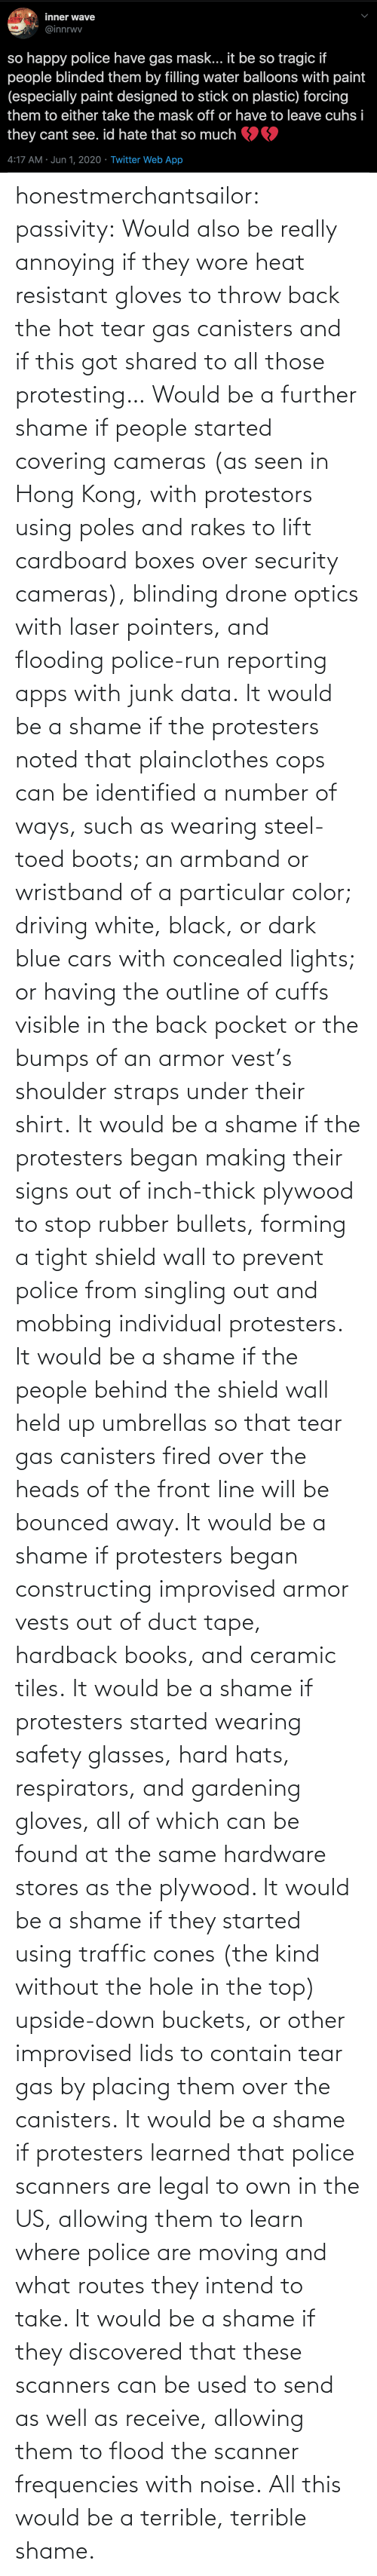 Protesting: honestmerchantsailor:  passivity: Would also be really annoying if they wore heat resistant gloves to throw back the hot tear gas canisters and if this got shared to all those protesting… Would be a further shame if people started covering cameras (as seen in Hong Kong, with protestors using poles and rakes to lift cardboard boxes over security cameras), blinding drone optics with laser pointers, and flooding police-run reporting apps with junk data. It would be a shame if the protesters noted that plainclothes cops can be identified a number of ways, such as wearing steel-toed boots; an armband or wristband of a particular color; driving white, black, or dark blue cars with concealed lights; or having the outline of cuffs visible in the back pocket or the bumps of an armor vest's shoulder straps under their shirt. It would be a shame if the protesters began making their signs out of inch-thick plywood to stop rubber bullets, forming a tight shield wall to prevent police from singling out and mobbing individual protesters. It would be a shame if the people behind the shield wall held up umbrellas so that tear gas canisters fired over the heads of the front line will be bounced away. It would be a shame if protesters began constructing improvised armor vests out of duct tape, hardback books, and ceramic tiles. It would be a shame if protesters started wearing safety glasses, hard hats, respirators, and gardening gloves, all of which can be found at the same hardware stores as the plywood. It would be a shame if they started using traffic cones (the kind without the hole in the top) upside-down buckets, or other improvised lids to contain tear gas by placing them over the canisters. It would be a shame if protesters learned that police scanners are legal to own in the US, allowing them to learn where police are moving and what routes they intend to take. It would be a shame if they discovered that these scanners can be used to send as well as receive, allowing them to flood the scanner frequencies with noise. All this would be a terrible, terrible shame.